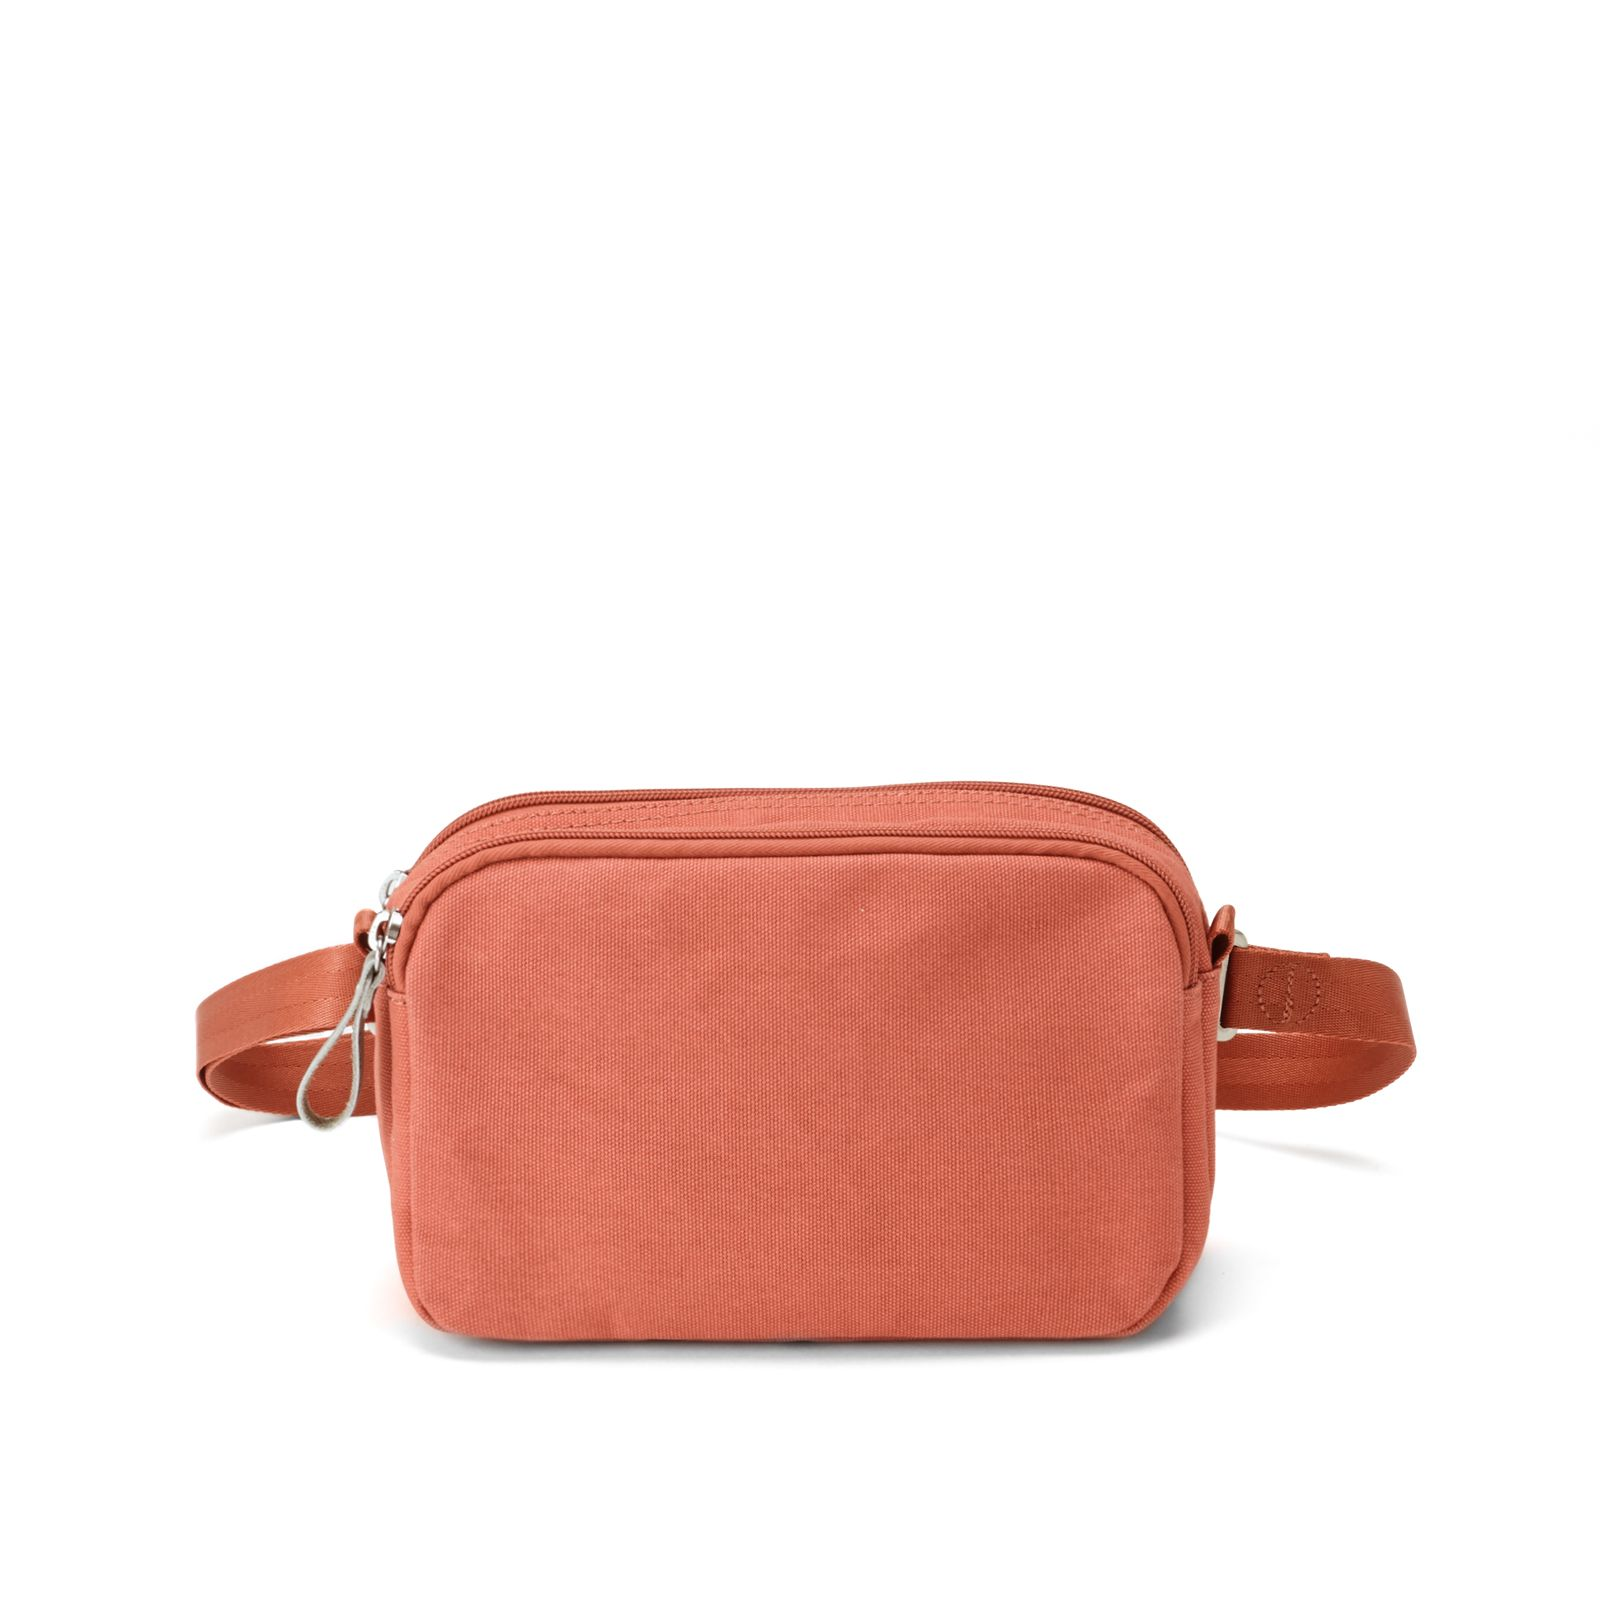 Hip Bag (Organic Brick) - Organic Brick